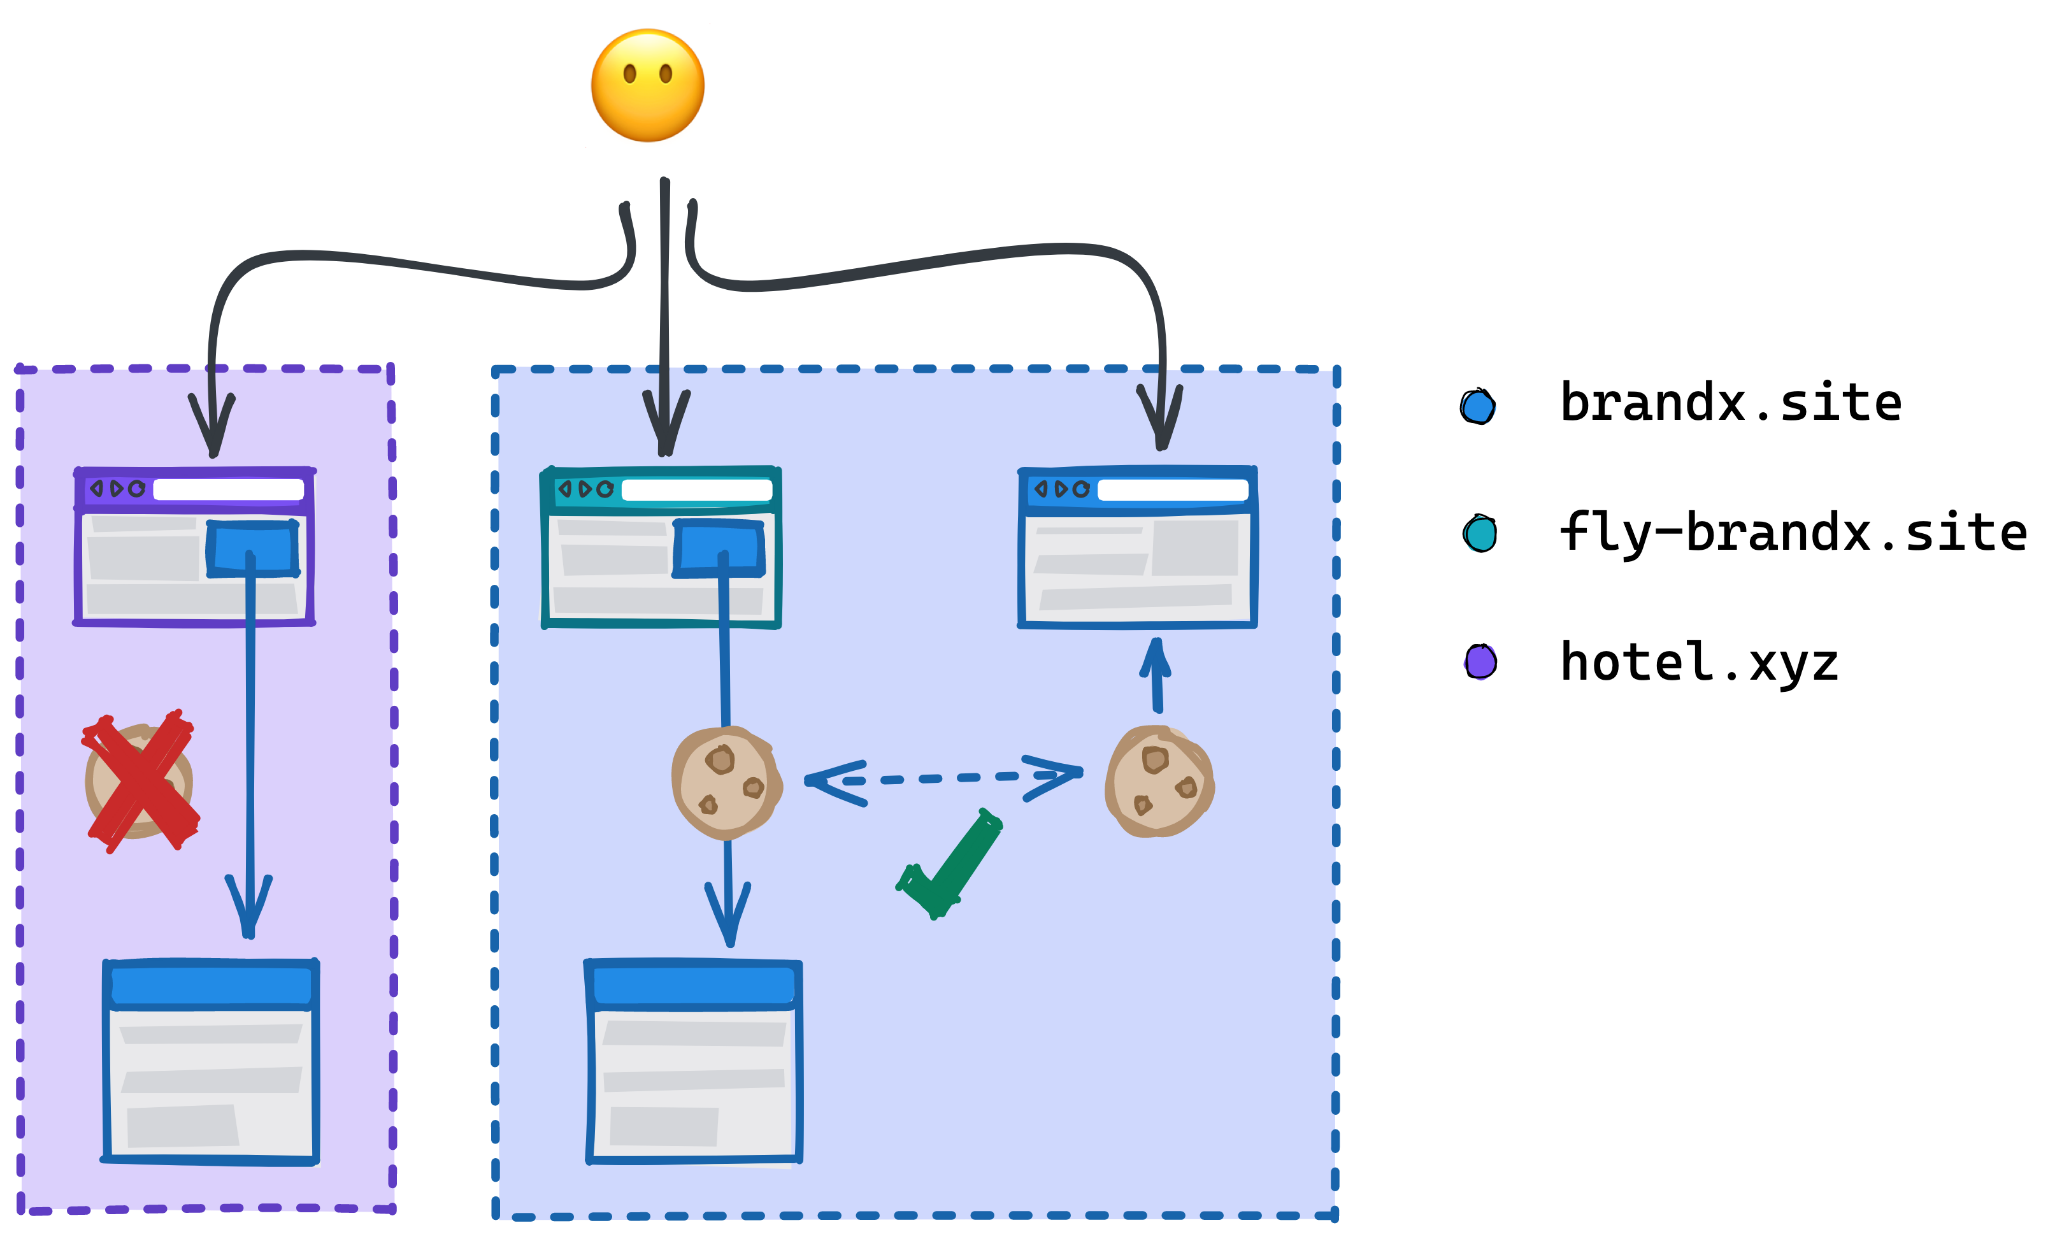 Diagram showing the brandx.site cookie allowed or blocked in cross-site contexts as described.